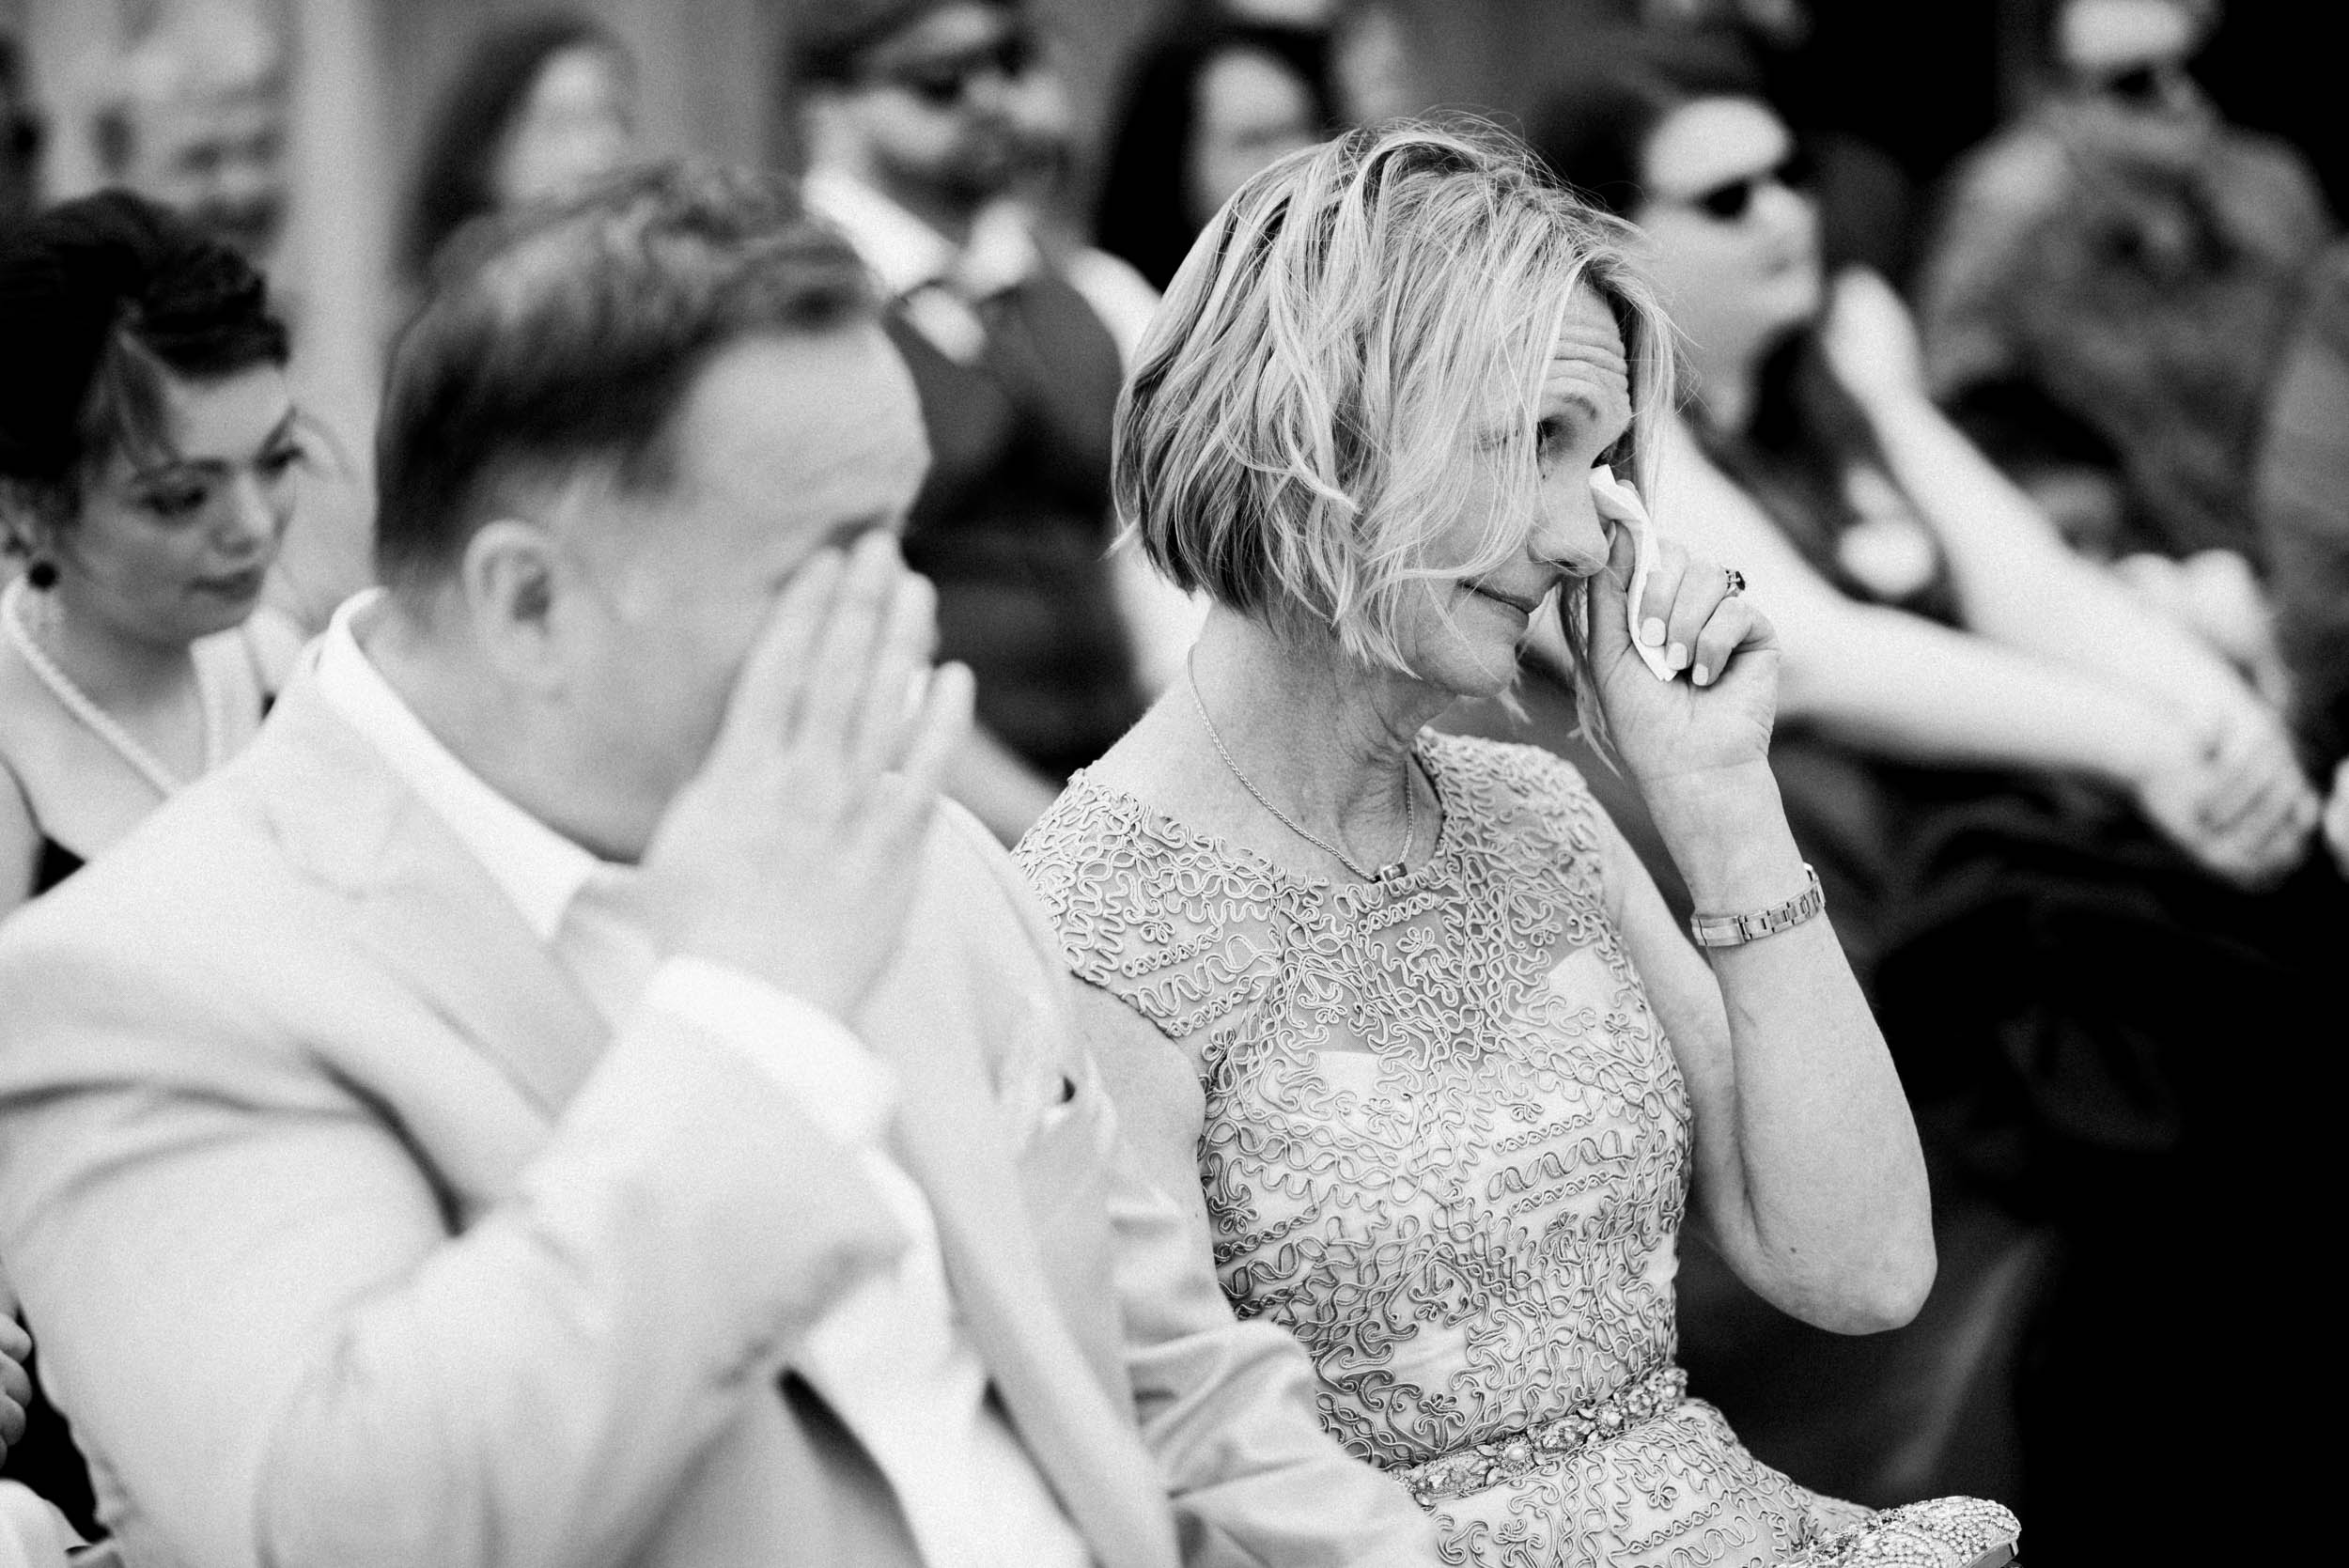 Parents of bride crying during wedding ceremony